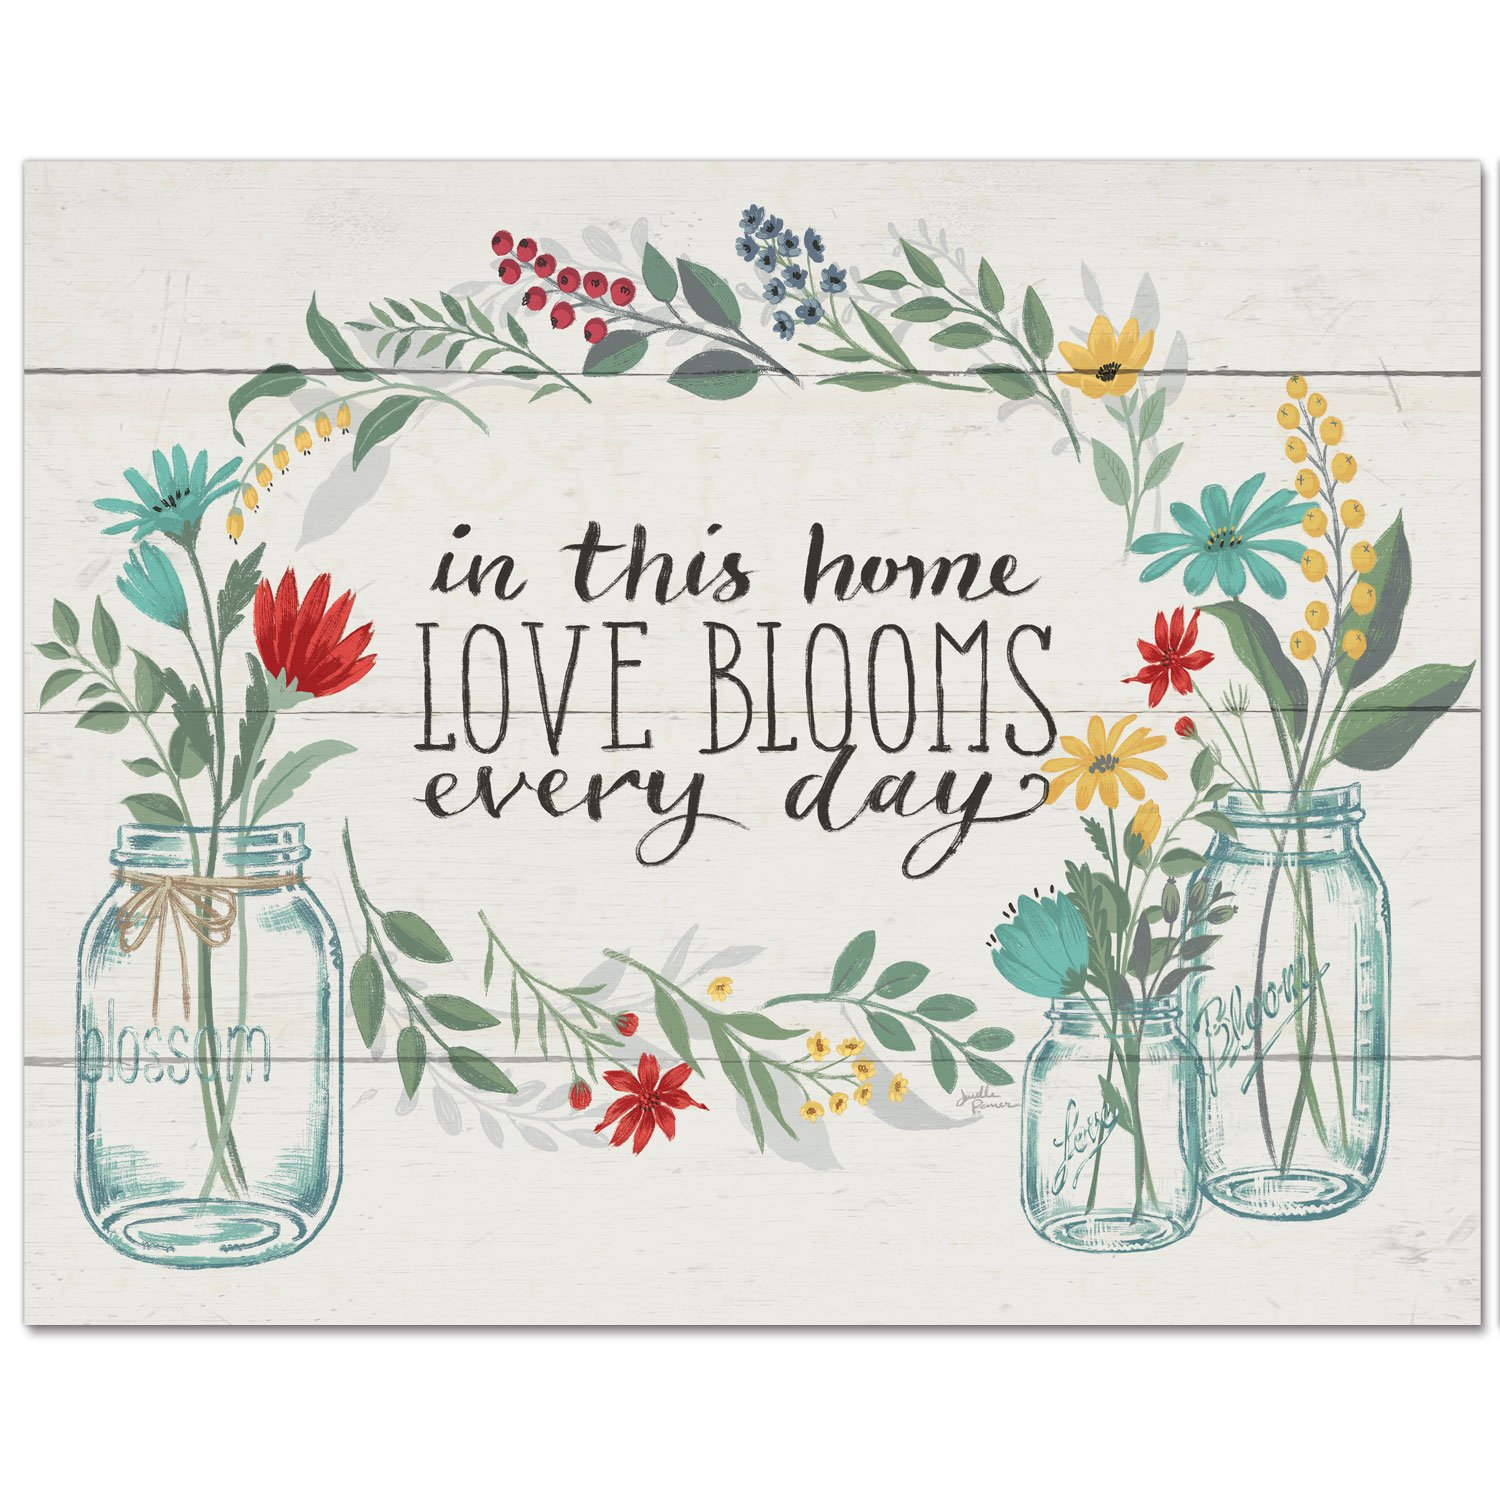 CounterArt 15 by 12-Inch Glass Cutting Board, In This Home Love Blooms Every Day-Floral by CounterArt